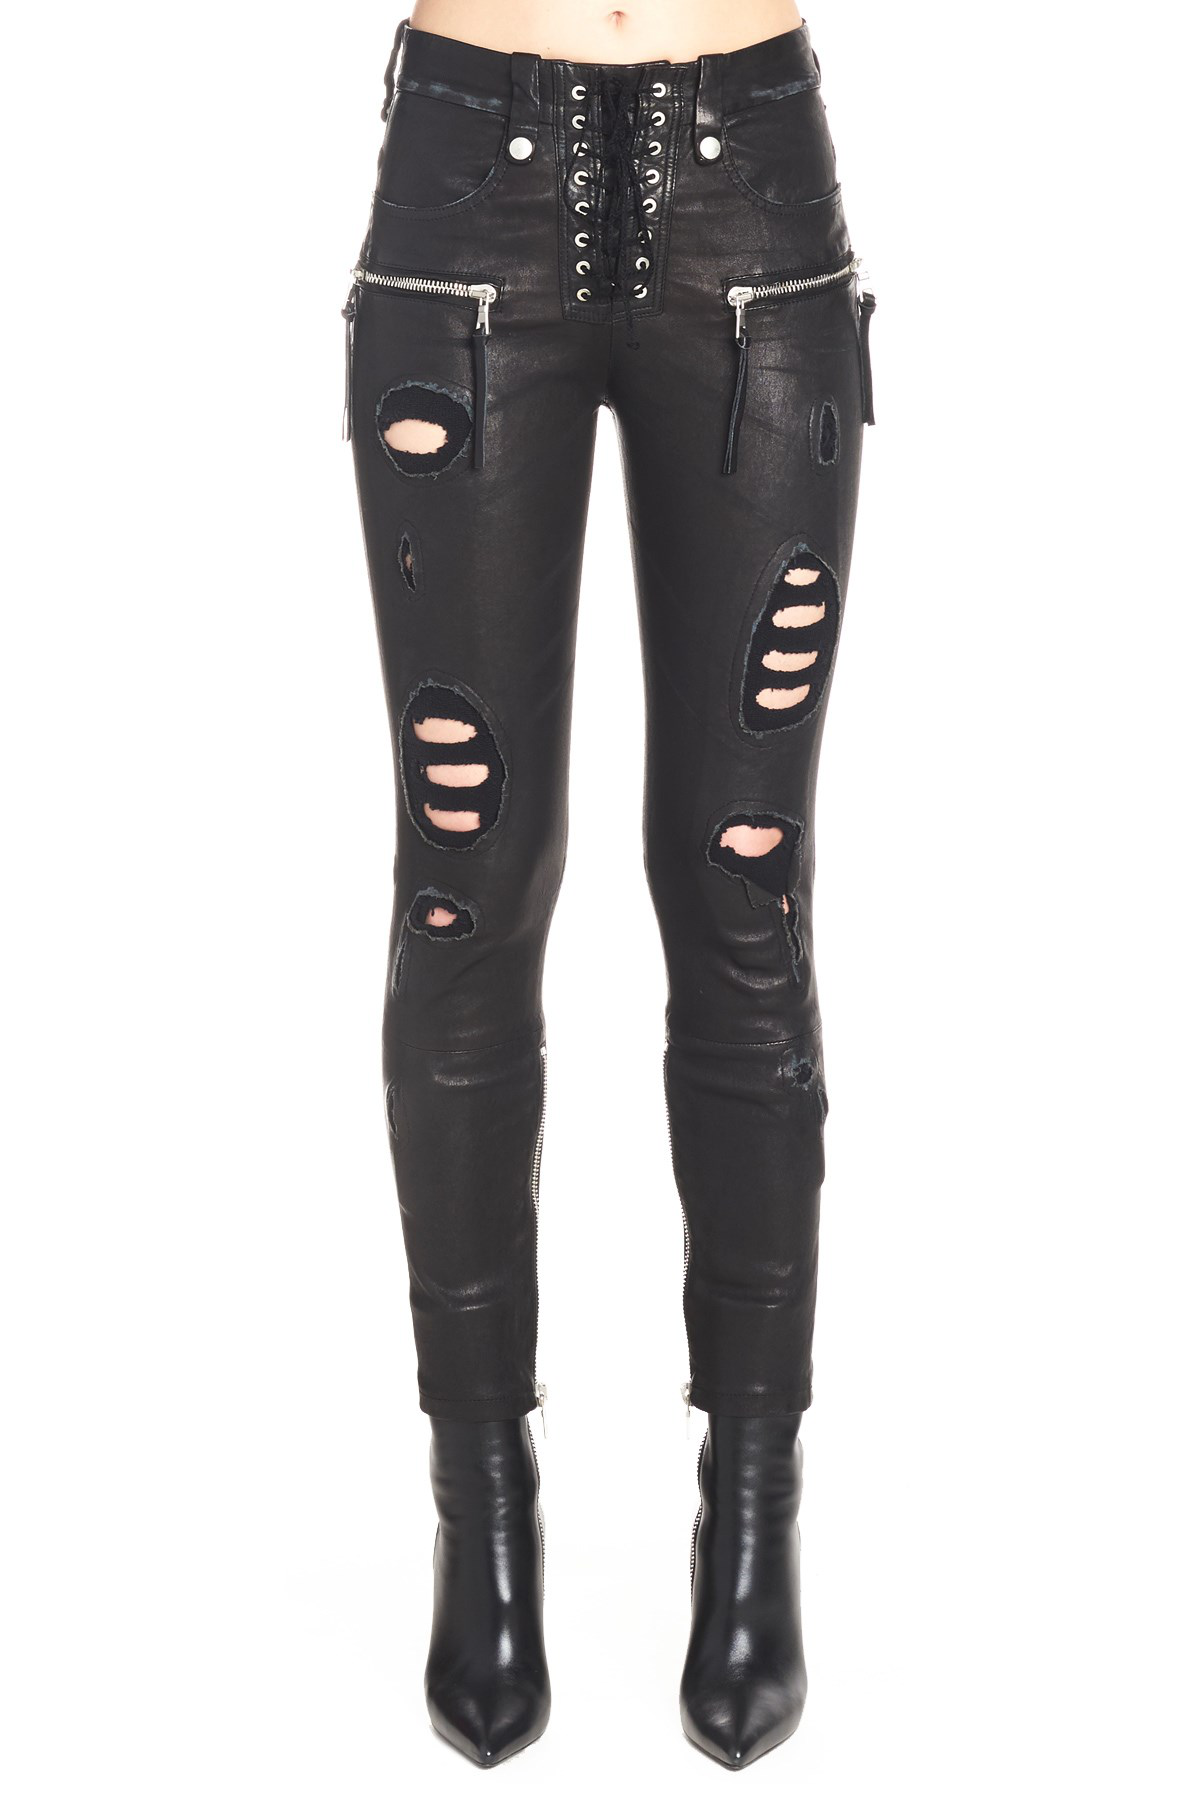 Ben Taverniti Unravel Project Unravel Black Distressed Leather Lace-Up Trousers